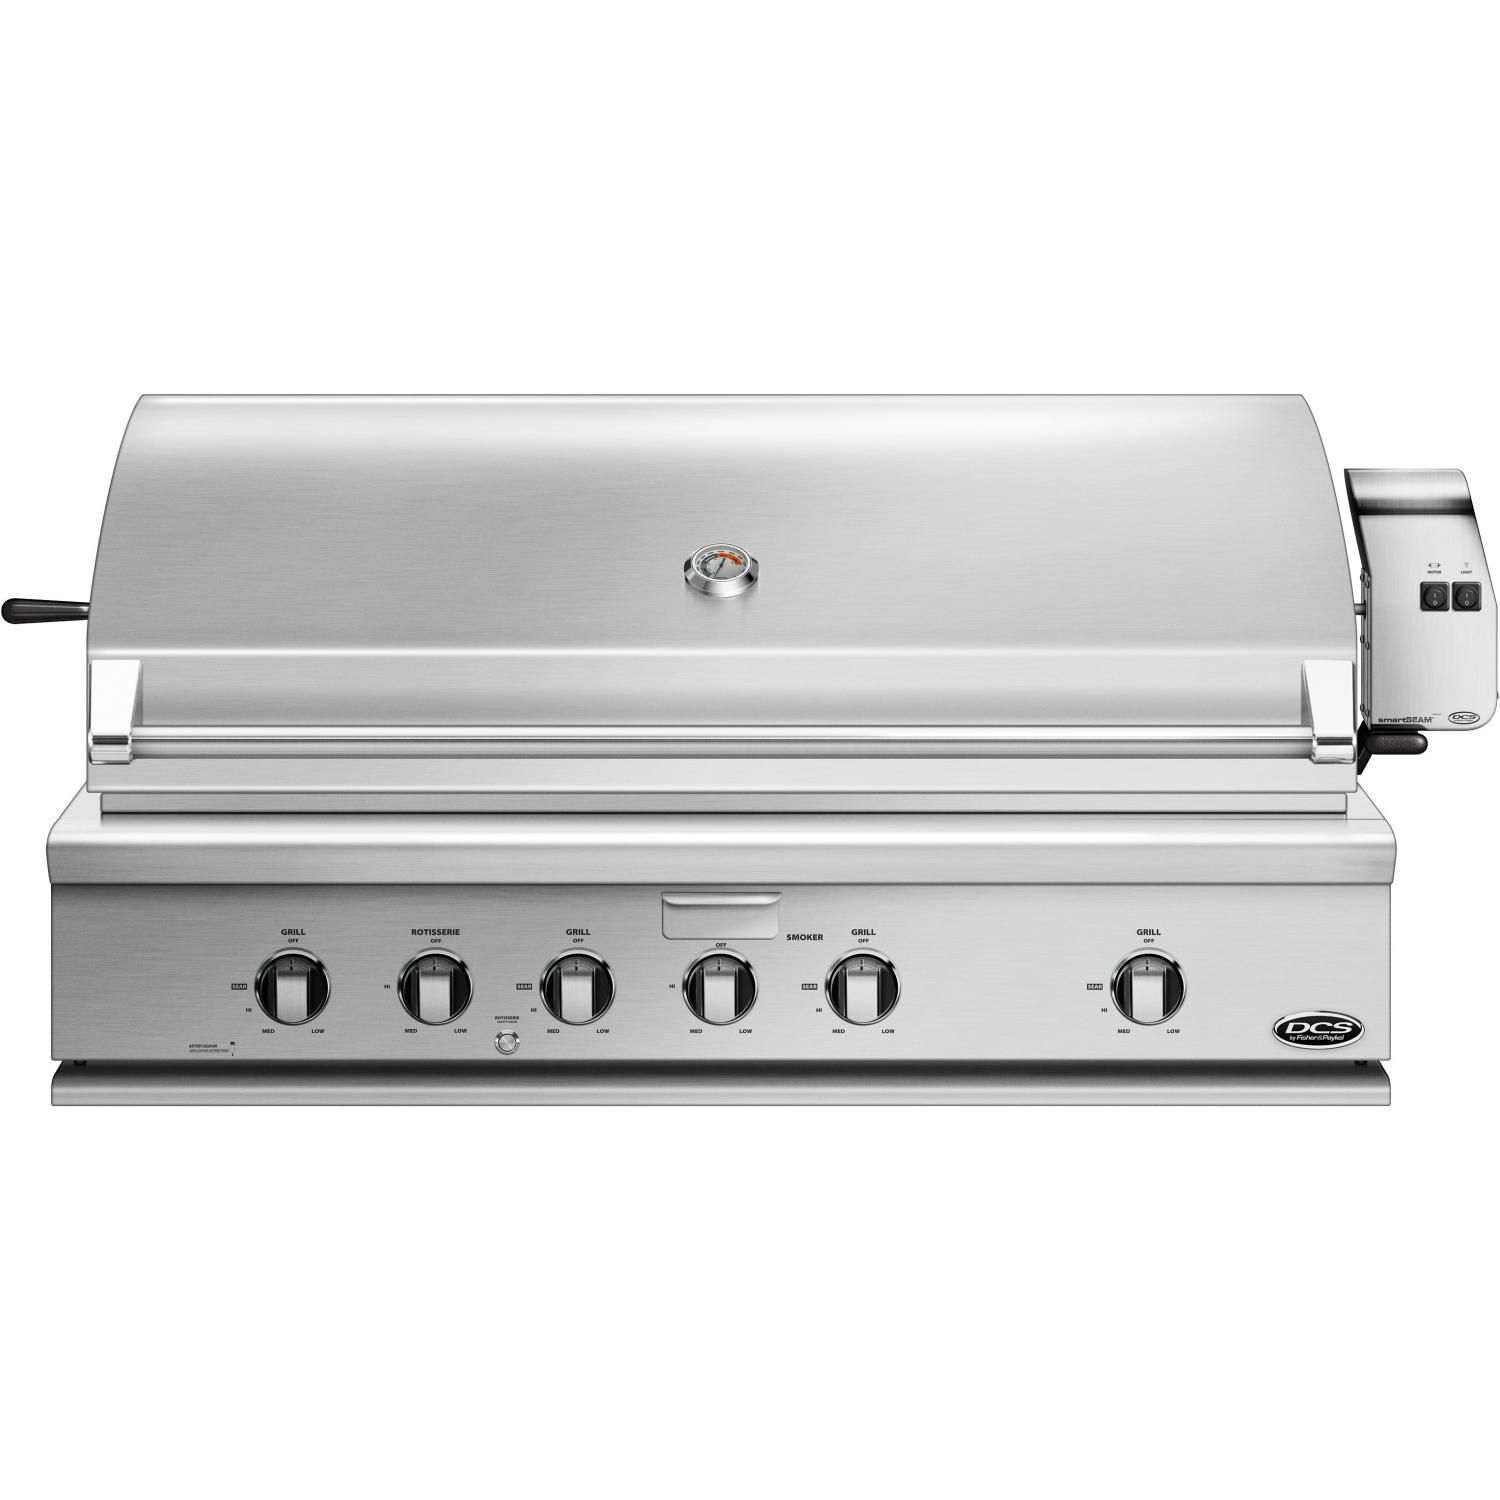 Dcs Series 7 Traditional 48 Built In Propane Gas Grill With Rotisserie Bh1 48r L Propane Gas Grill Built In Grill Brushed Stainless Steel